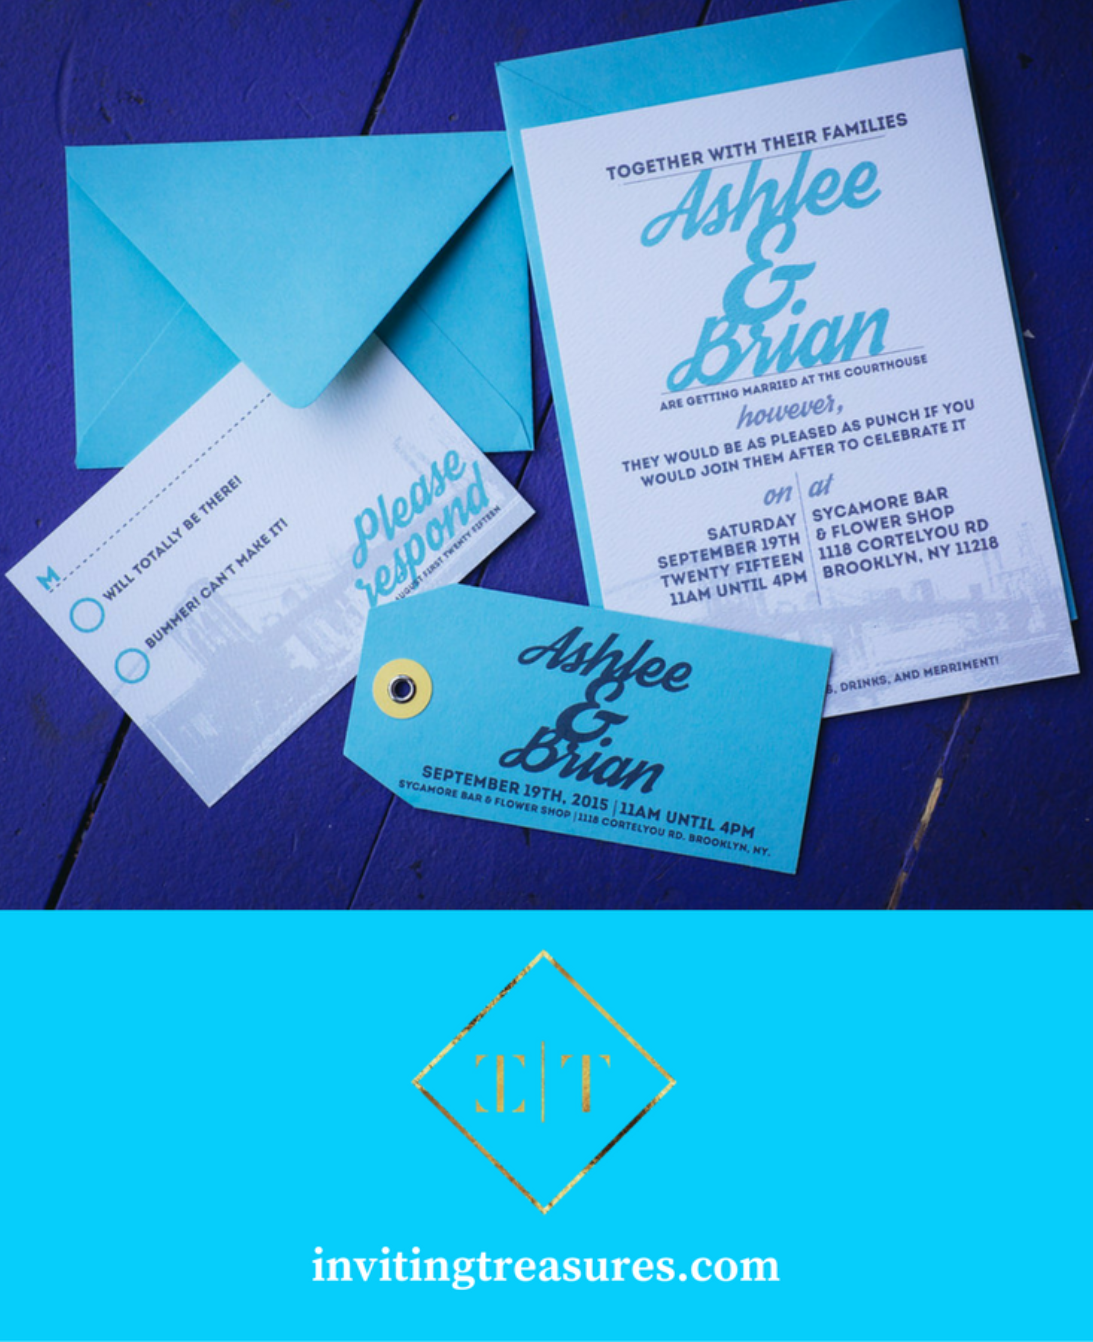 Teal and navy wedding invitations | teal wedding color palette ...